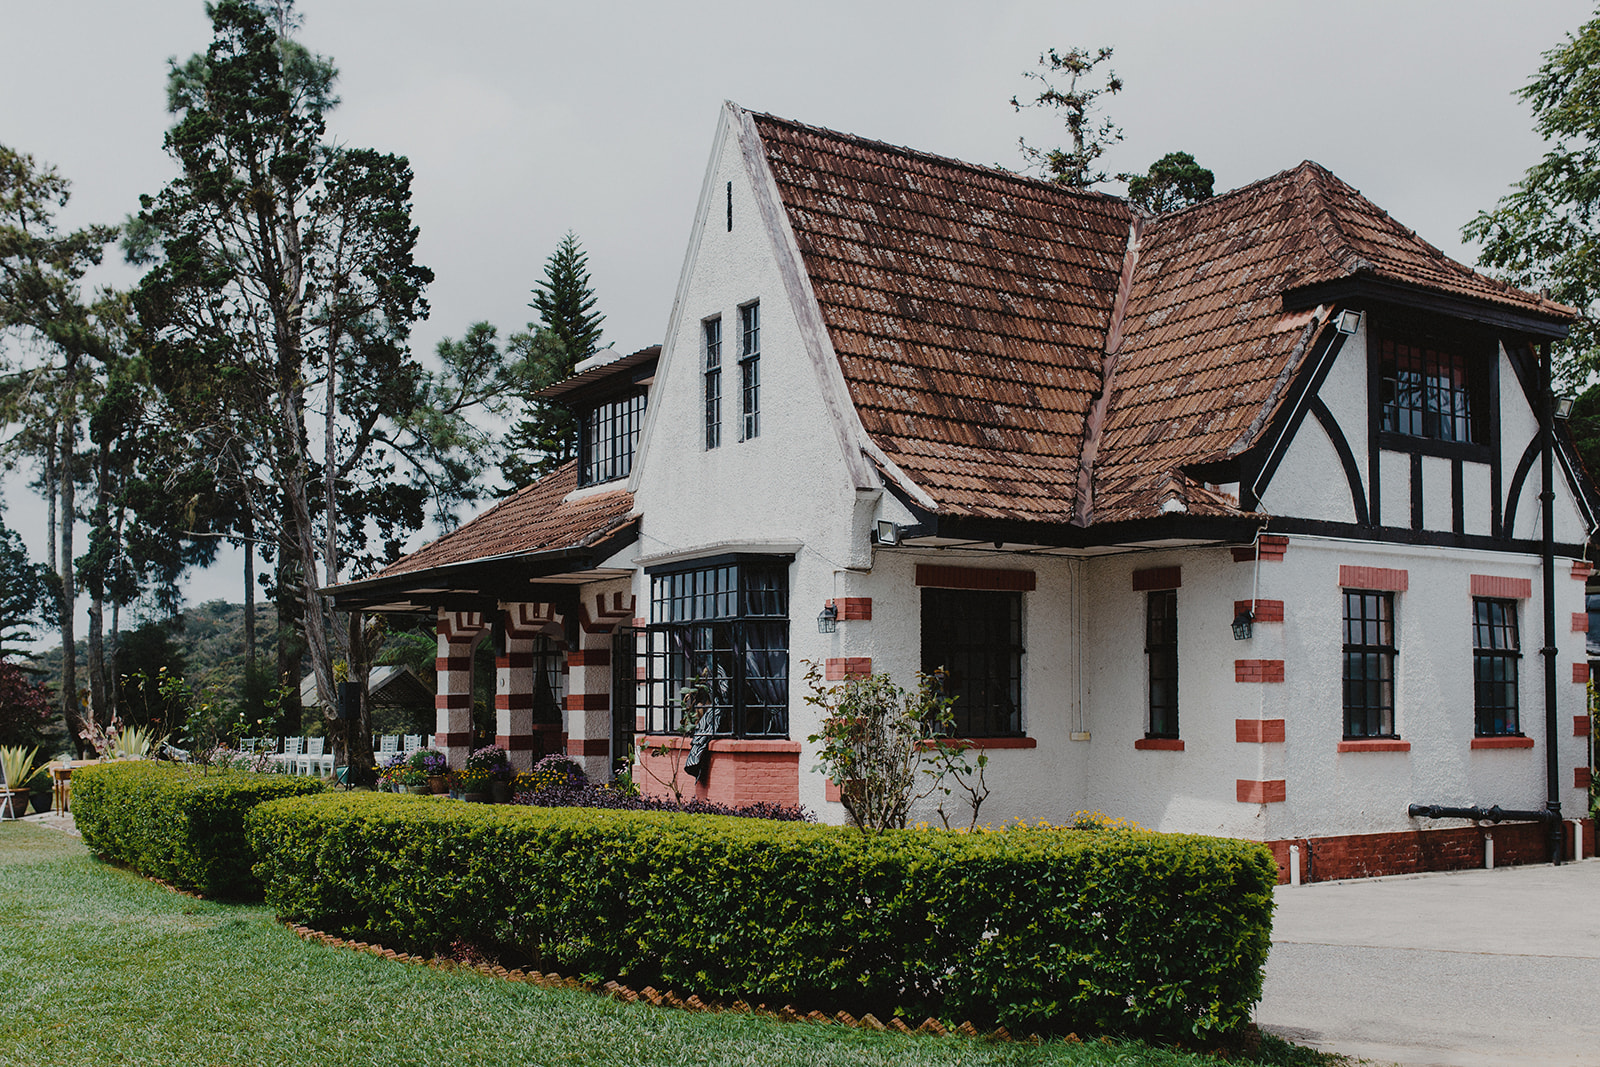 our venue is the charming  jim thompson cottage  in  brinchang, cameron highlands.